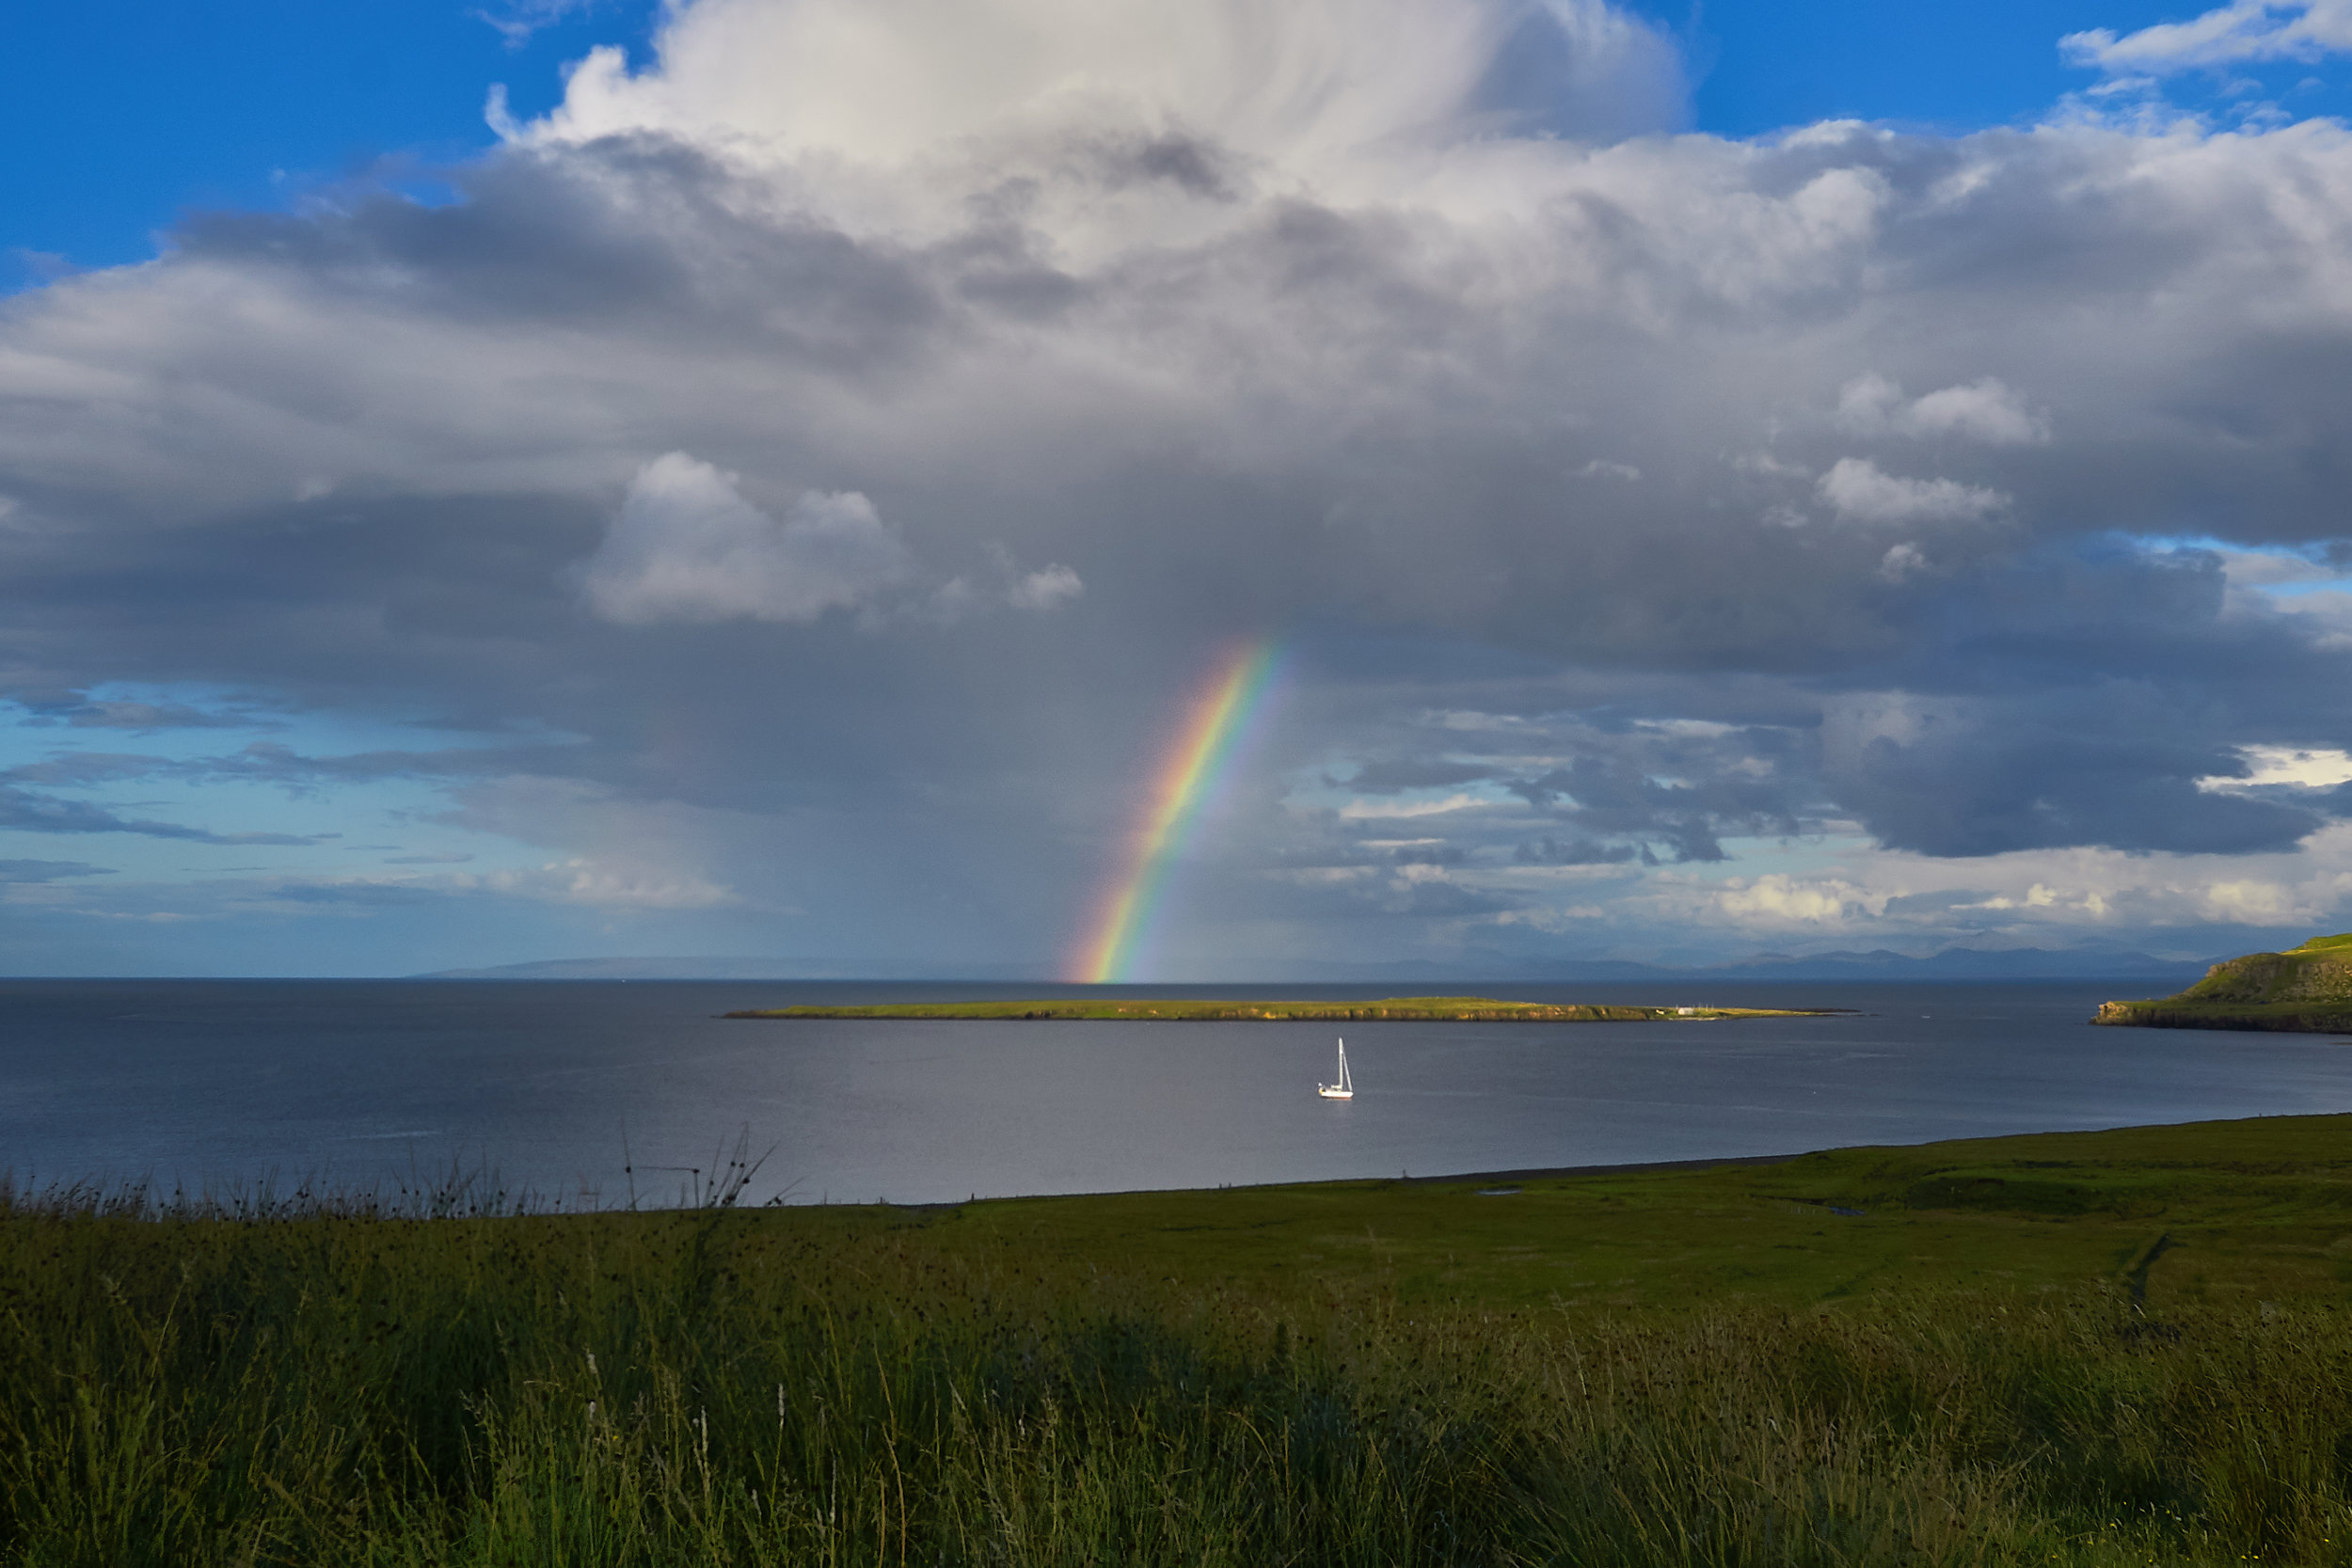 One of many rainbows found on Scotland's Isle of Skye that remind us of hope.